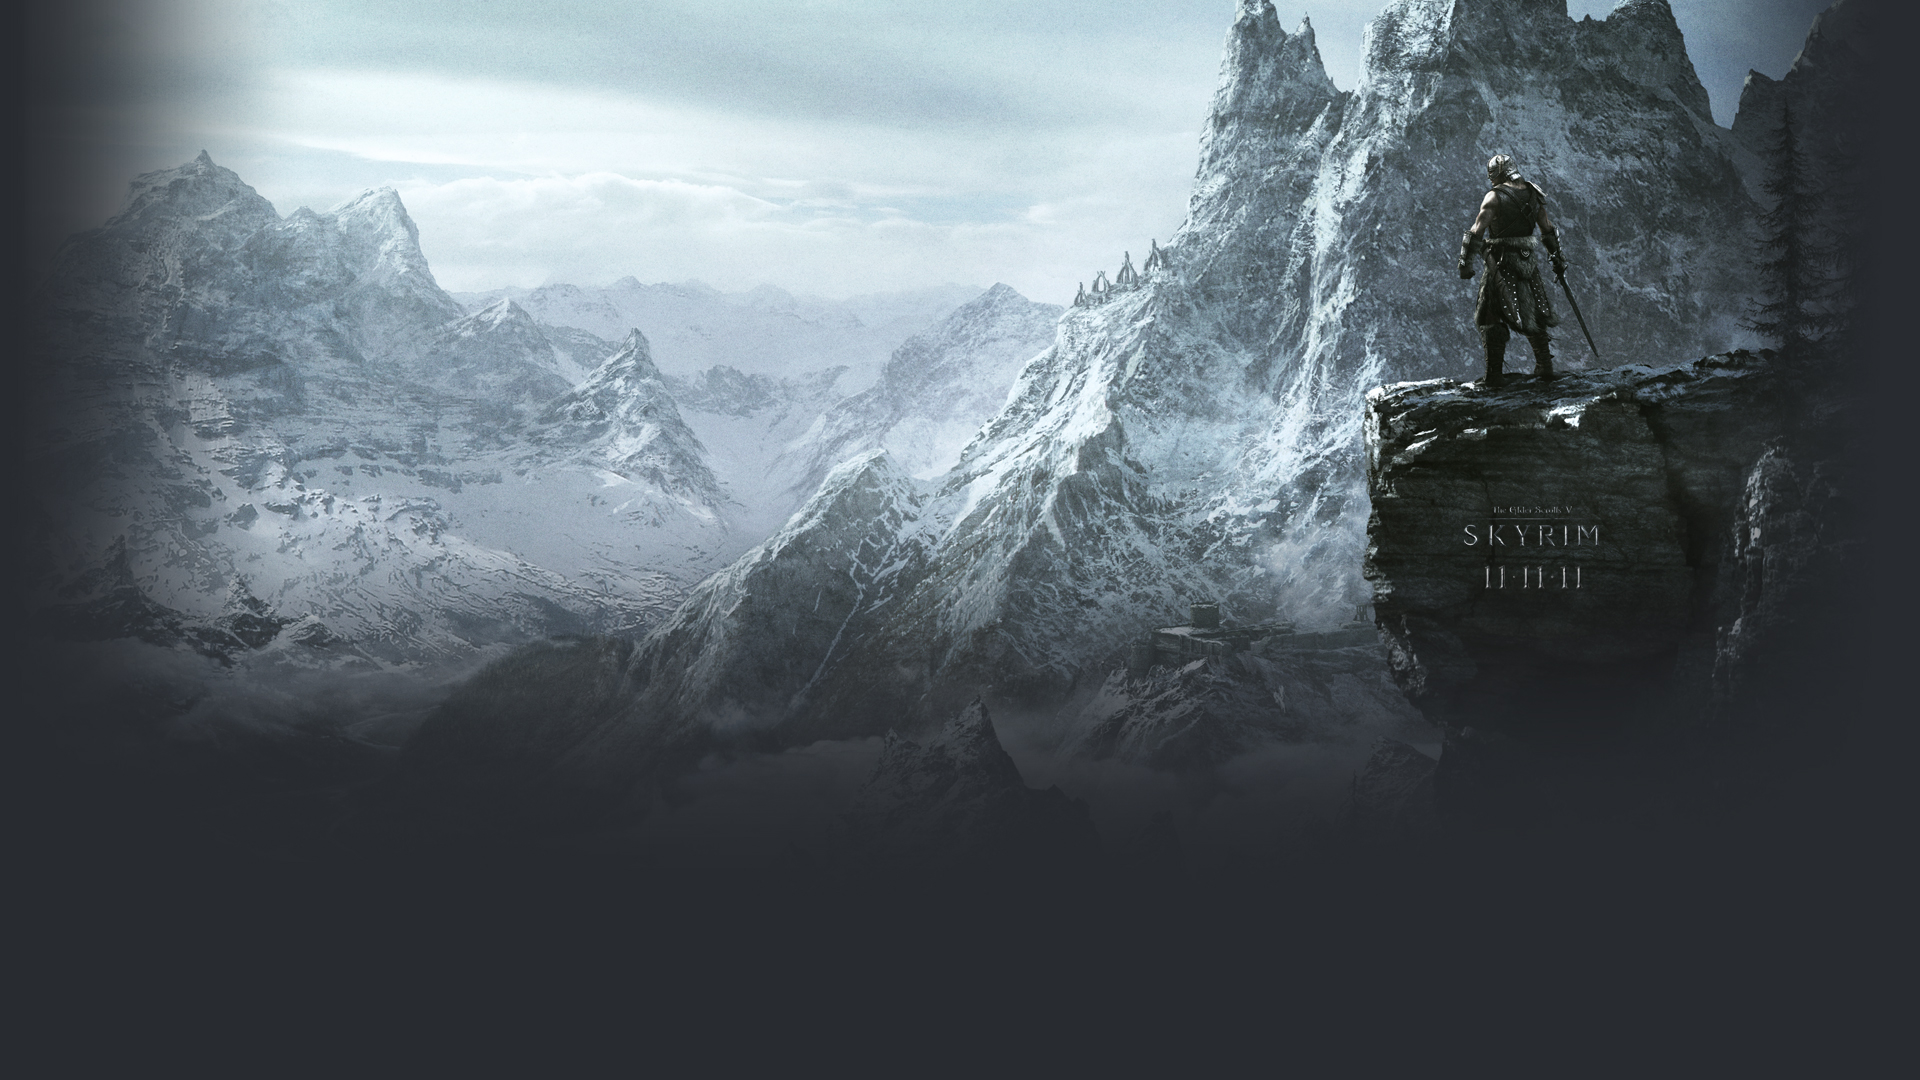 skyrim 1980 x 1040 wallpaper - photo #3